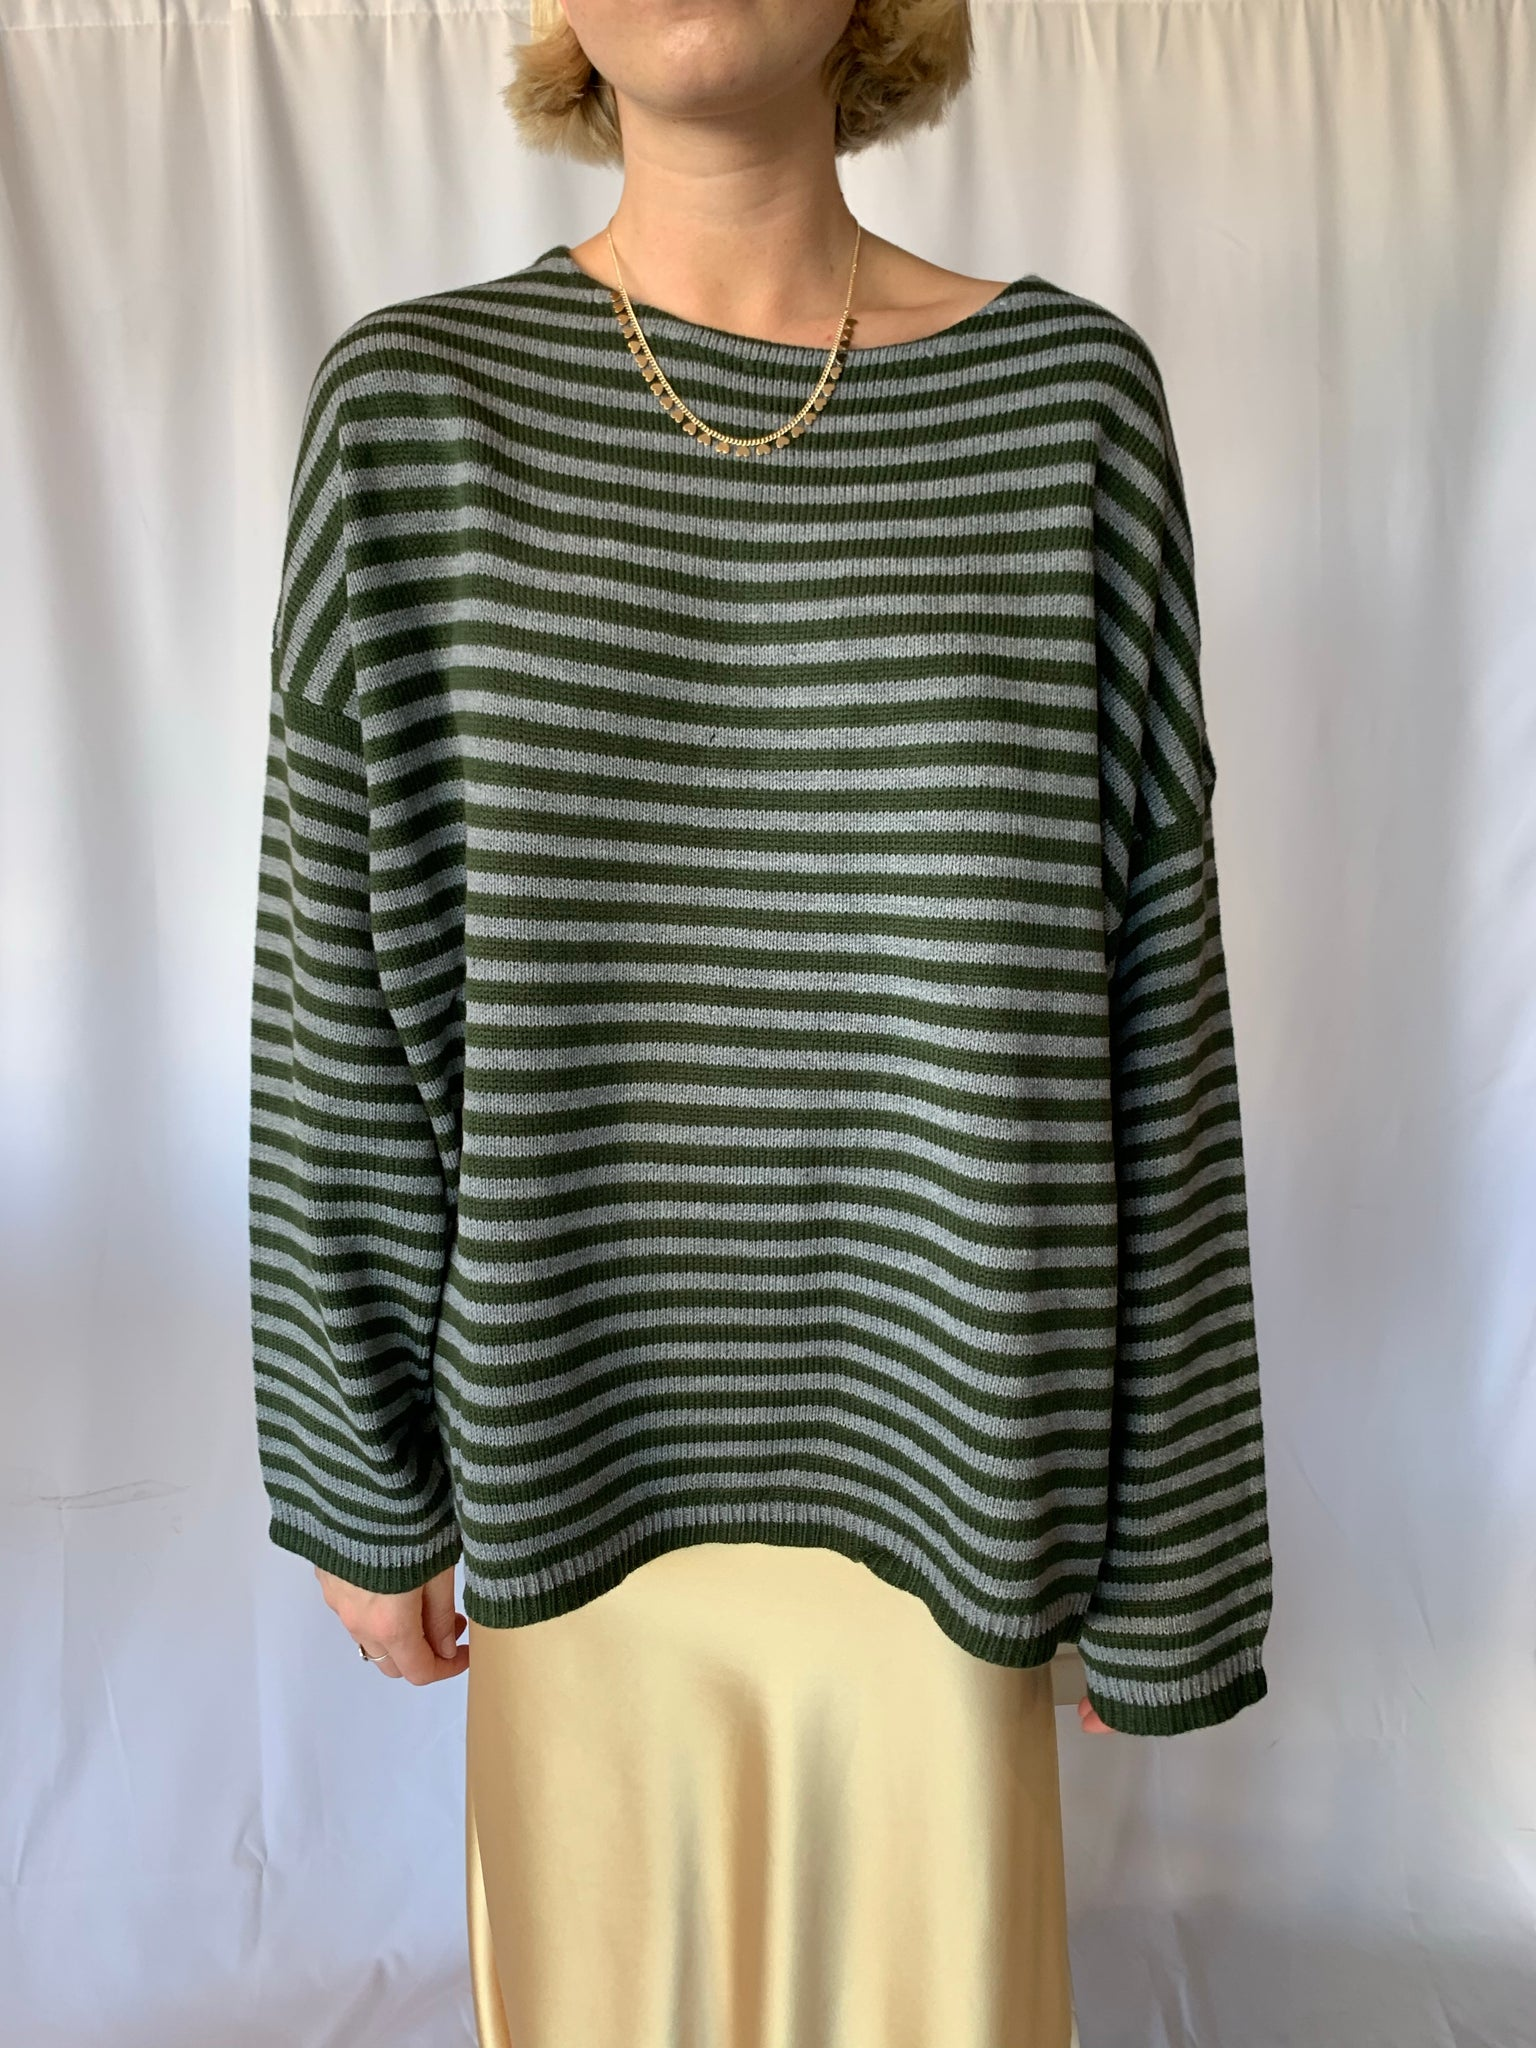 Green and Gray Striped Sweater